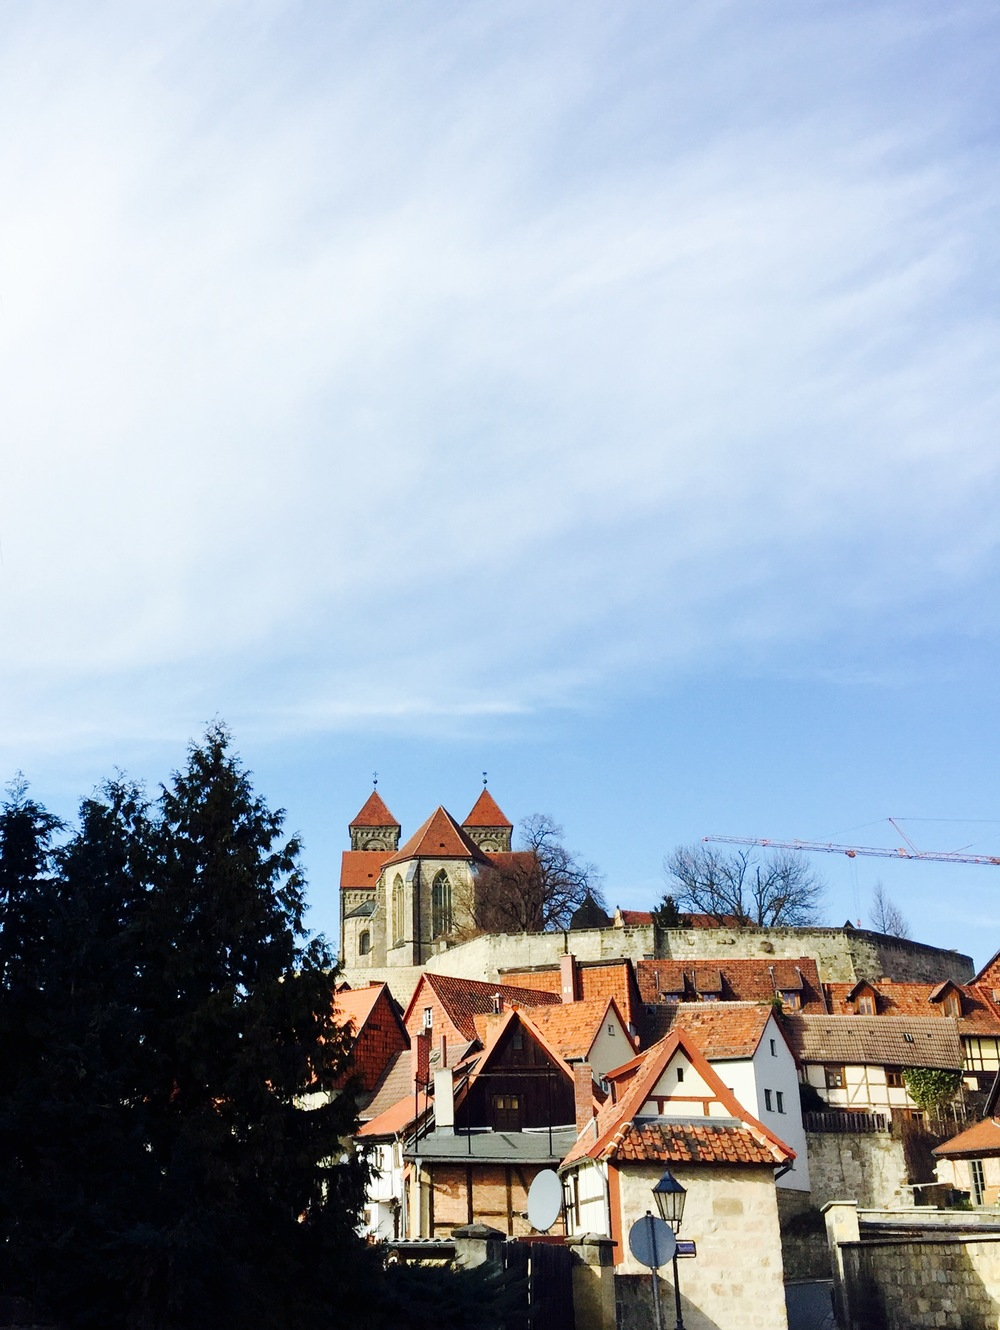 The Schloss in Quedlinburg along with a 21st Century crane.